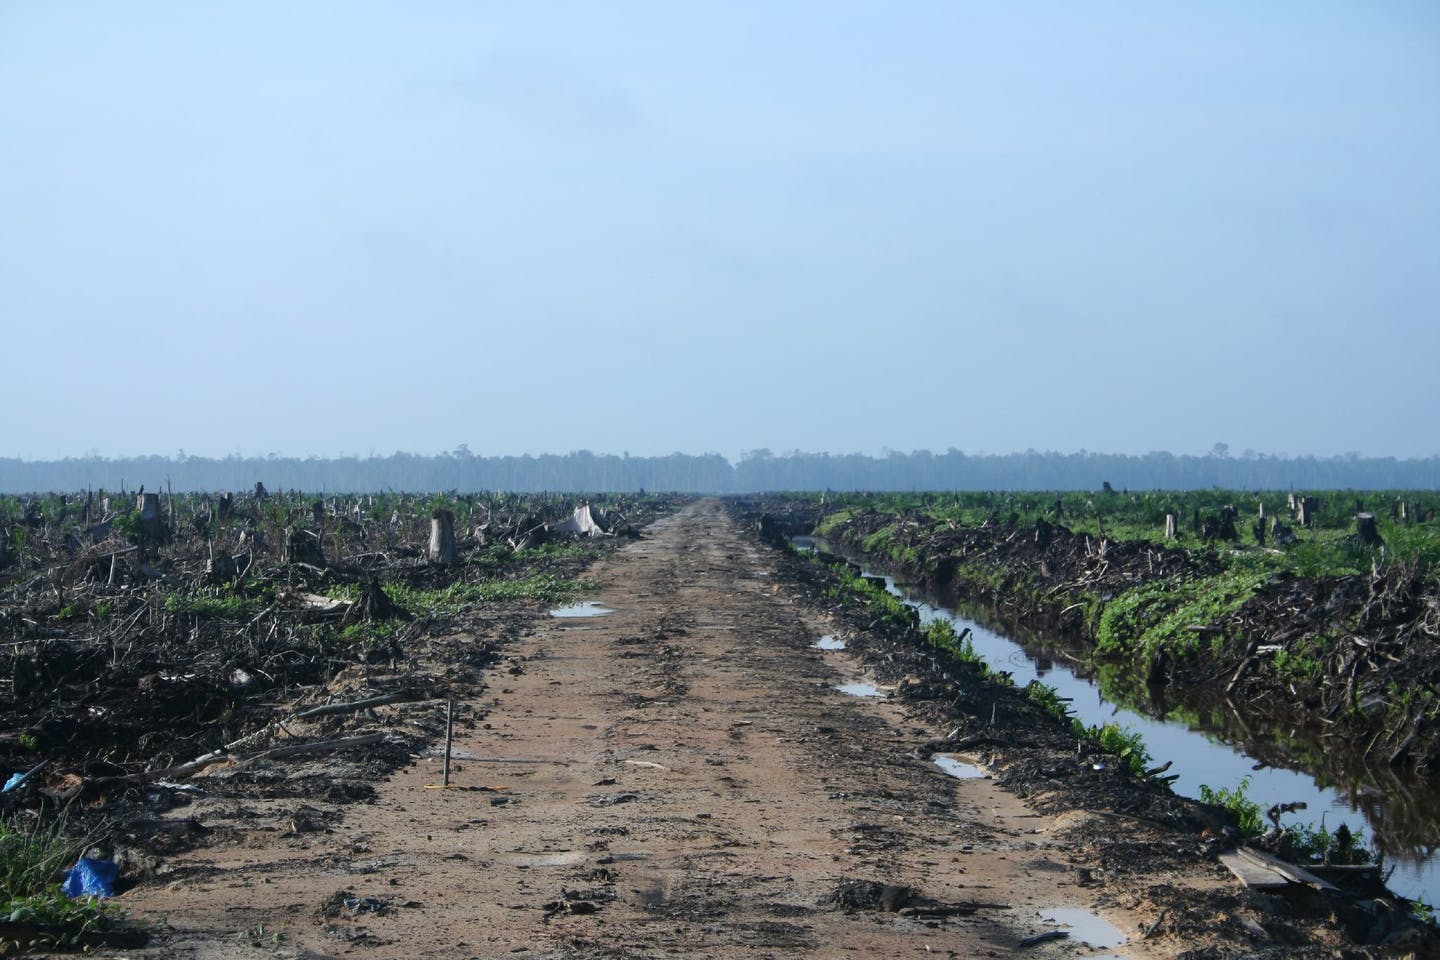 Deforestation, Riau, Indonesia